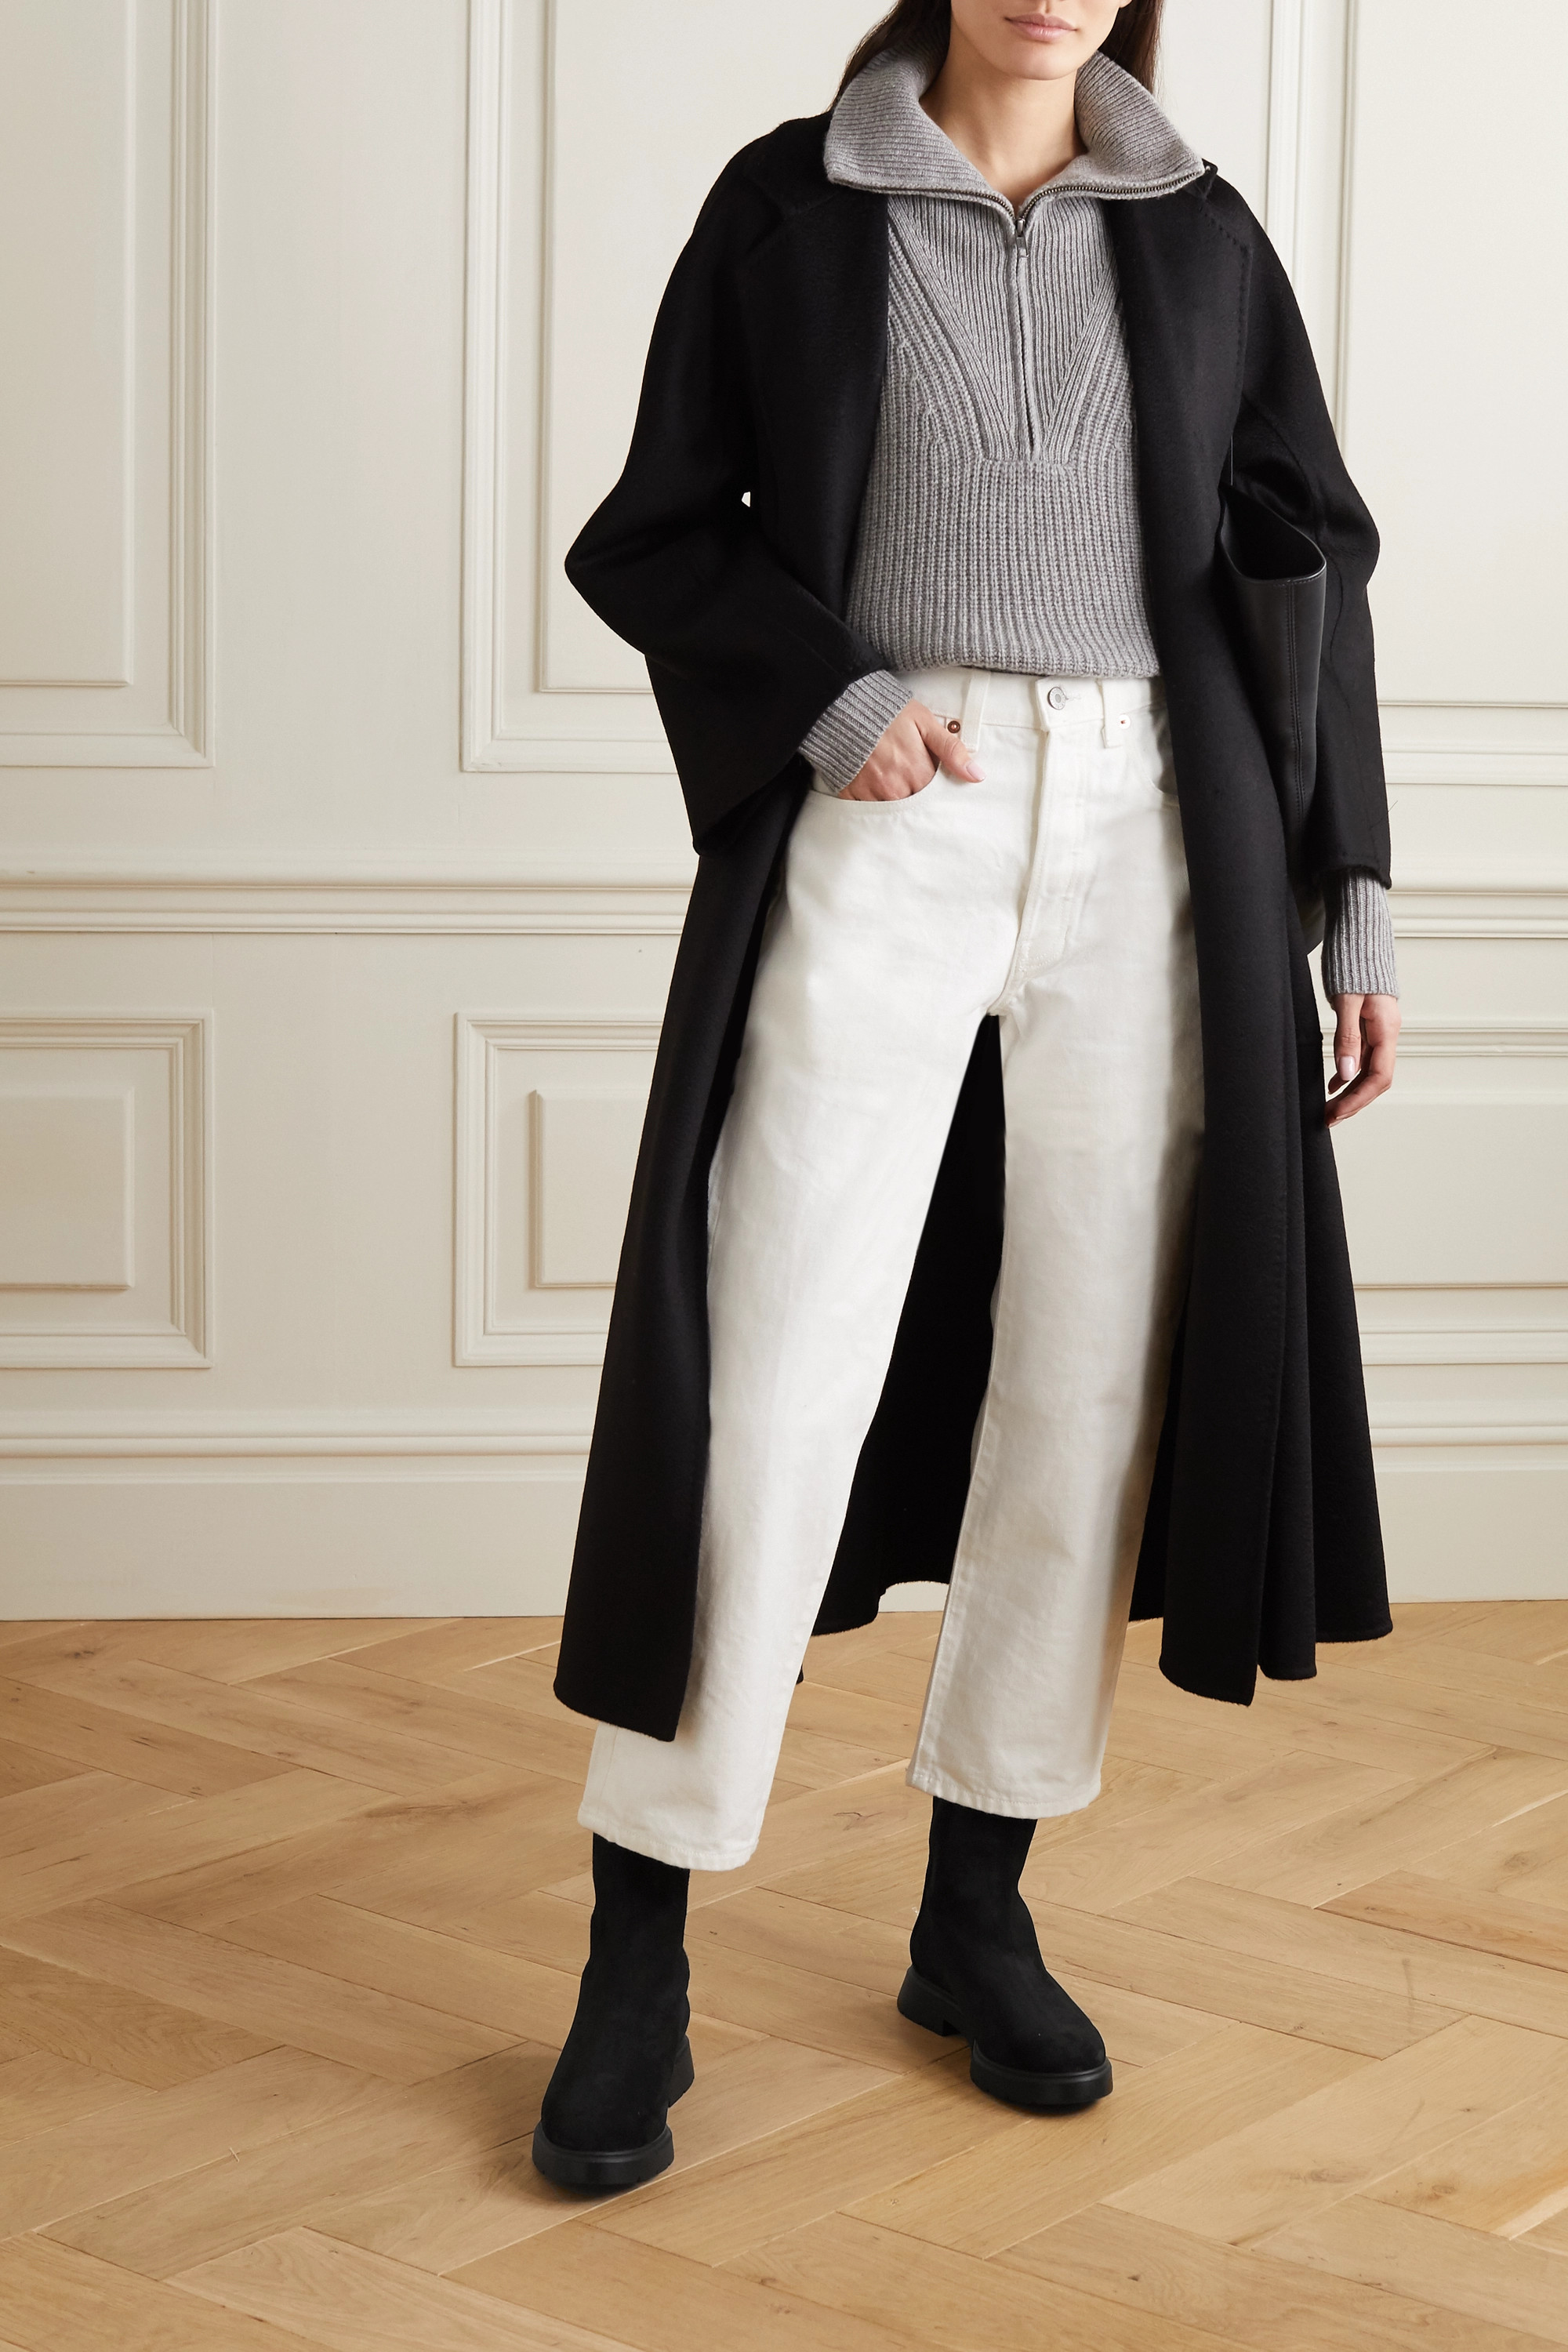 Stuart Weitzman Romy Chill shearling-lined suede ankle boots